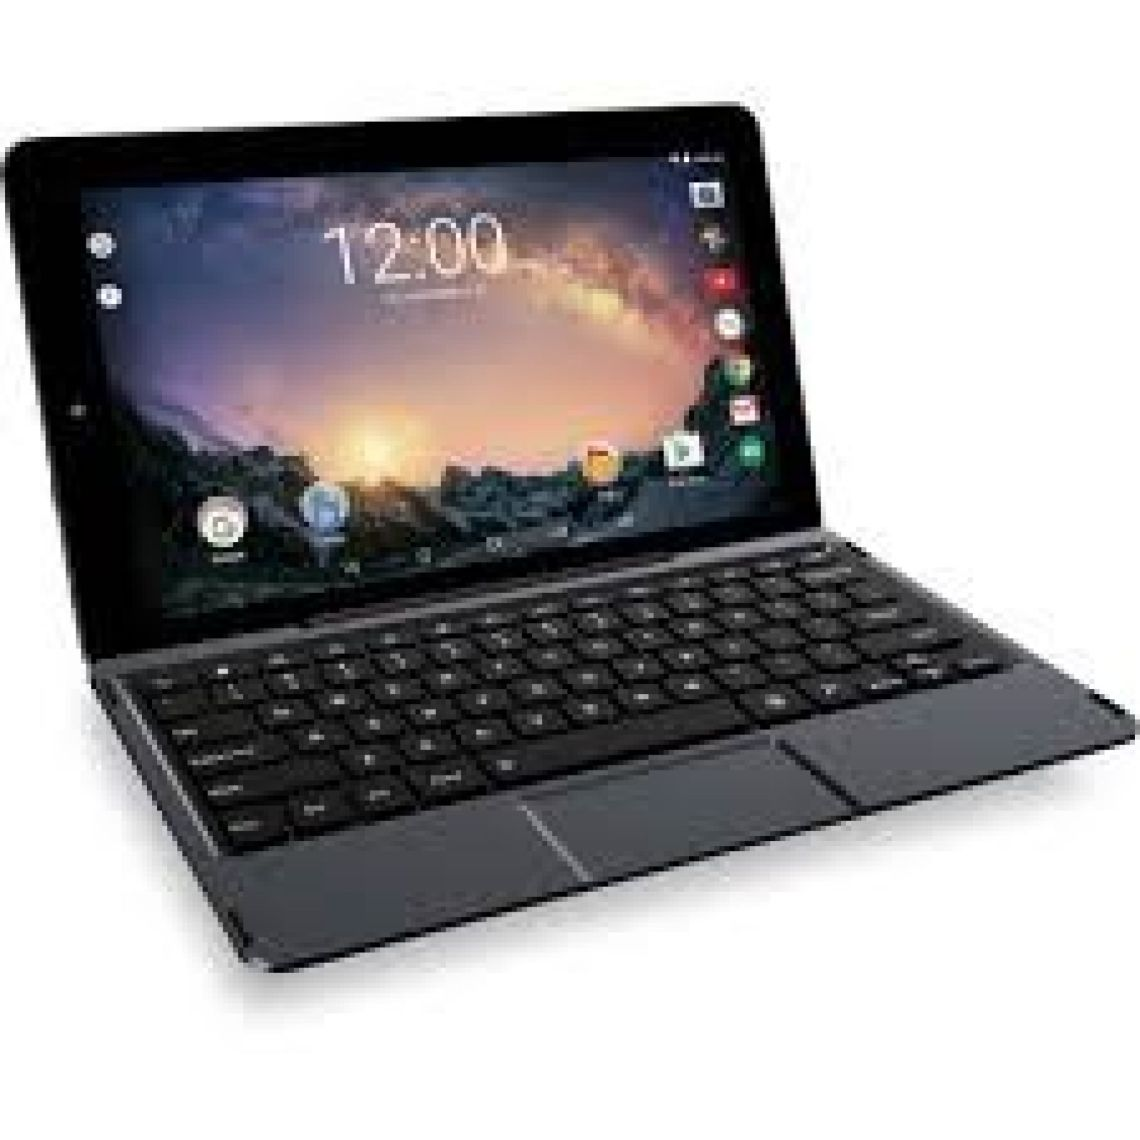 "RCA Galileo Pro 11.5"" 32GB 2-in-1 Tablet with Keyboard Case Android 6.0 (Marshmallow) - Walmart.com"